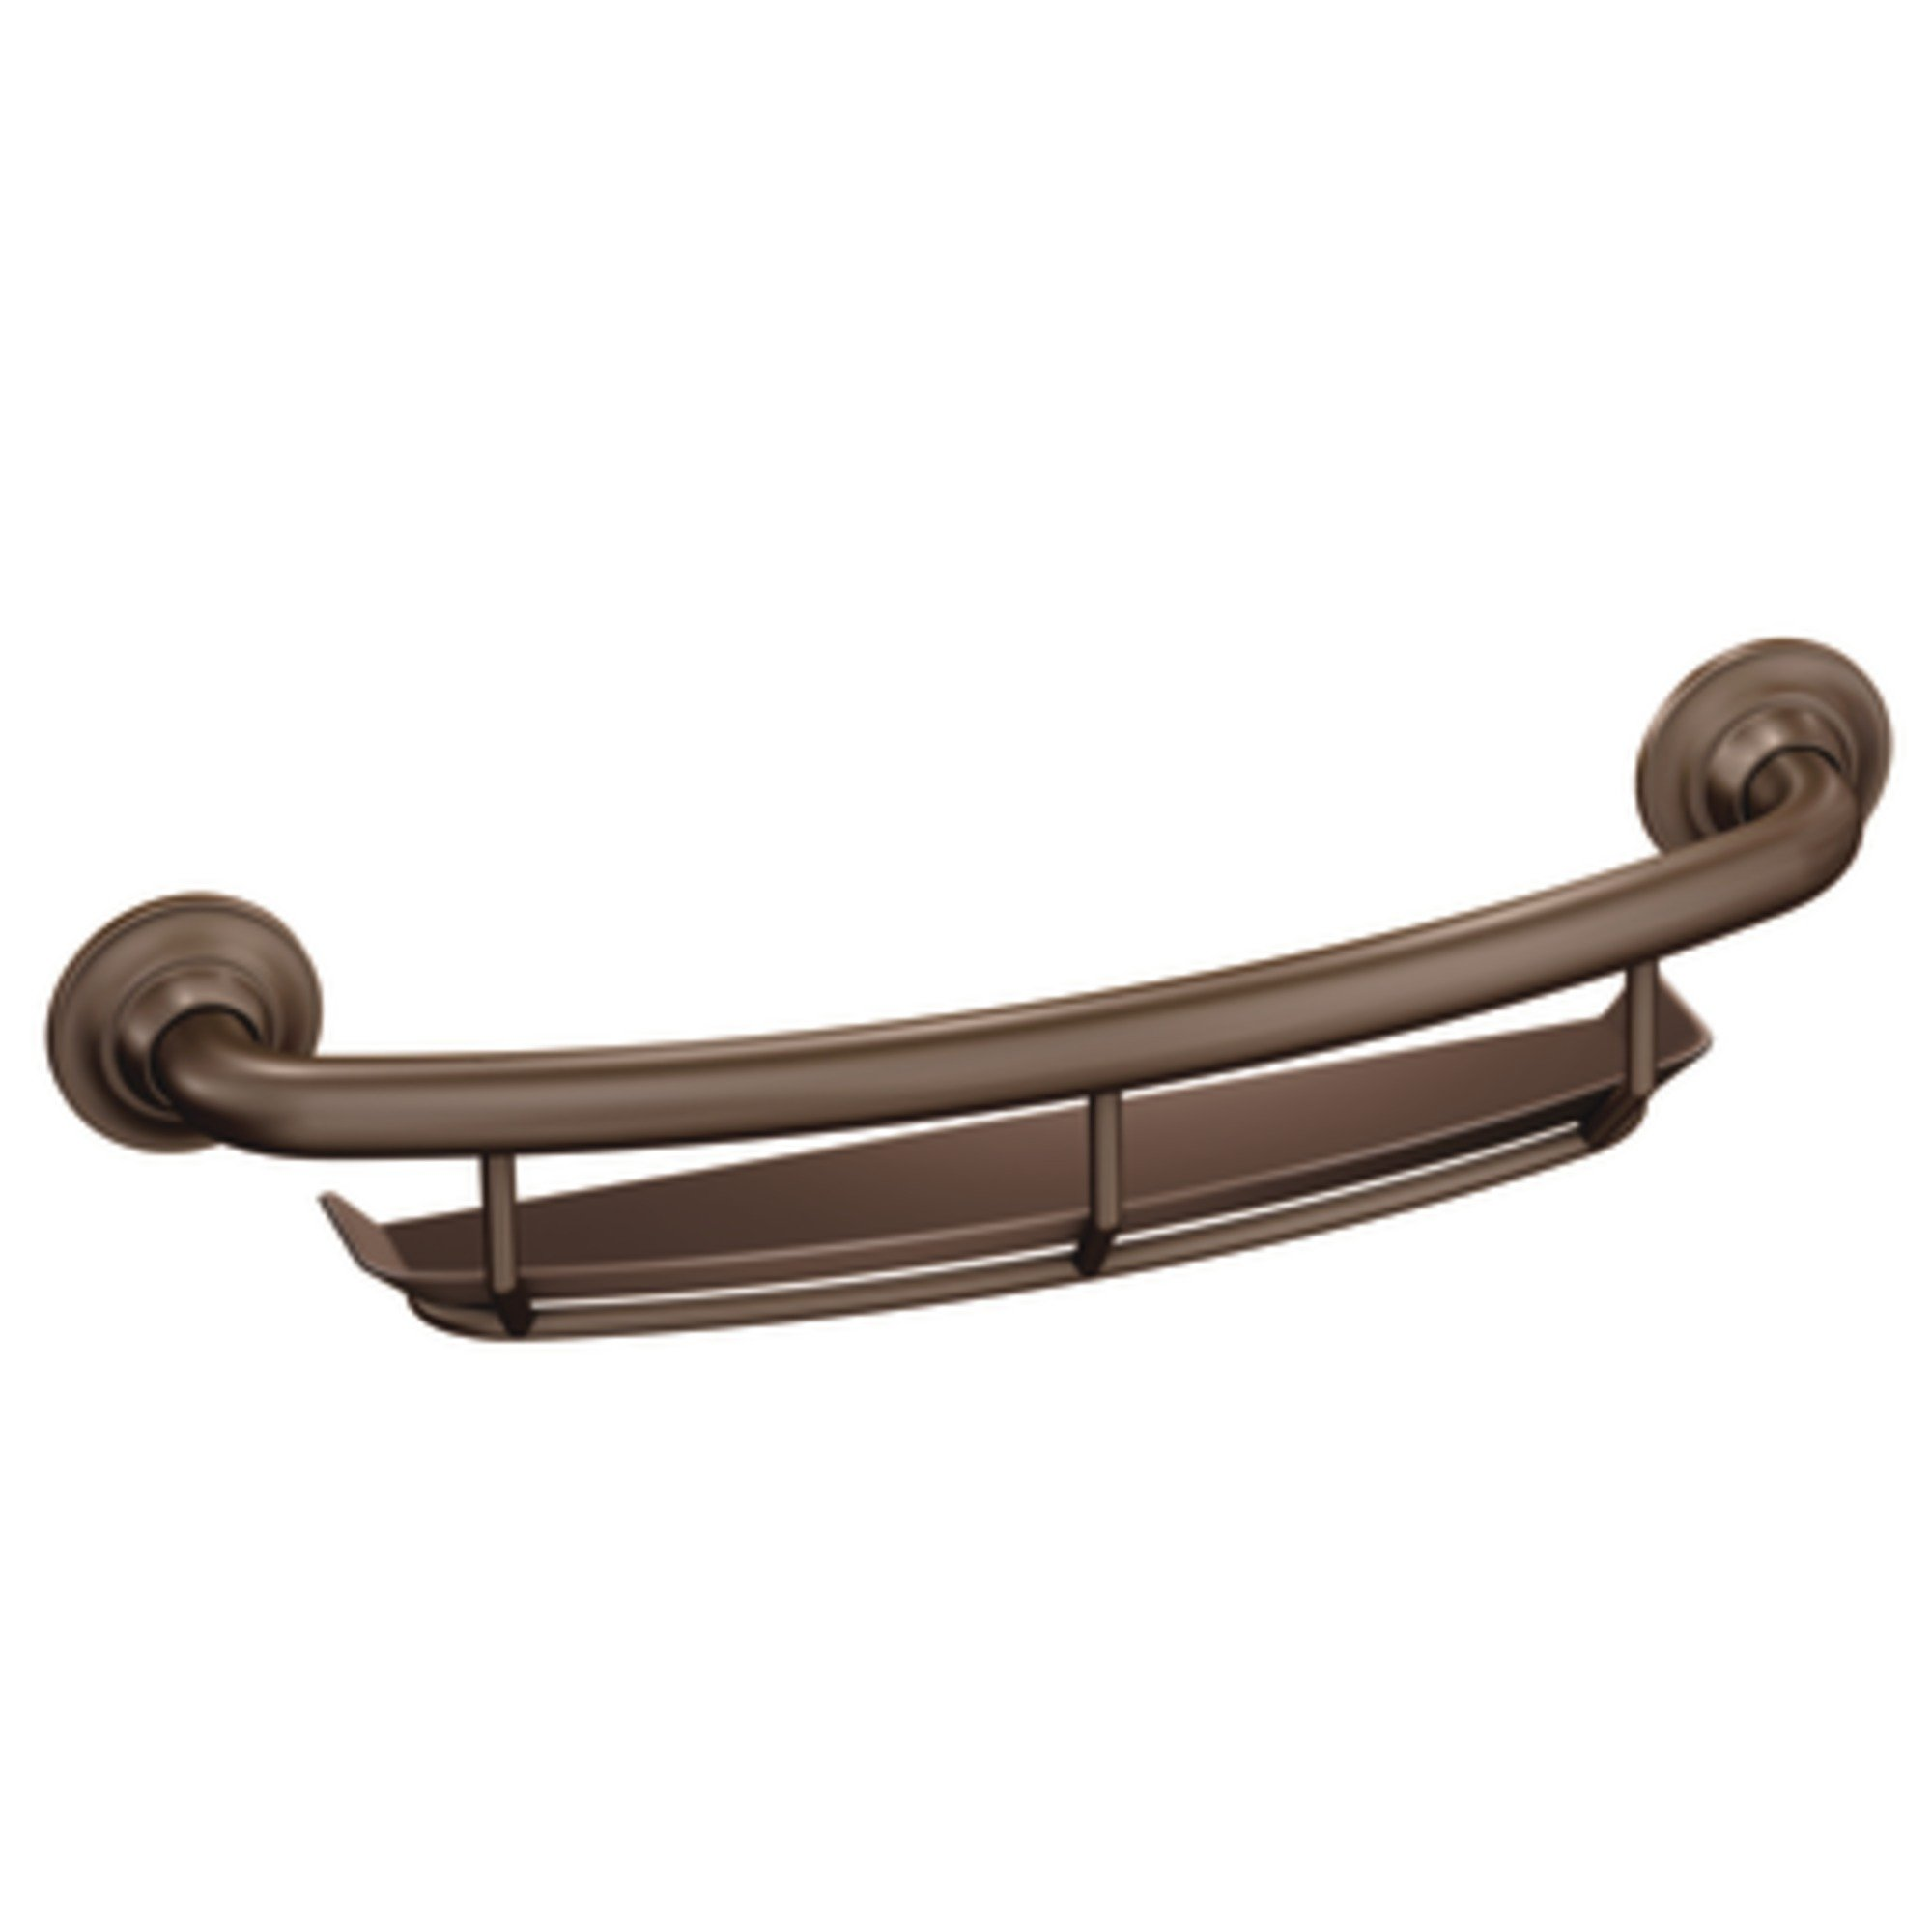 LR2356DOWB Moen LR2356DOWB Home Care 16-Inch Grab Bar with Shelf, Old World Bronze